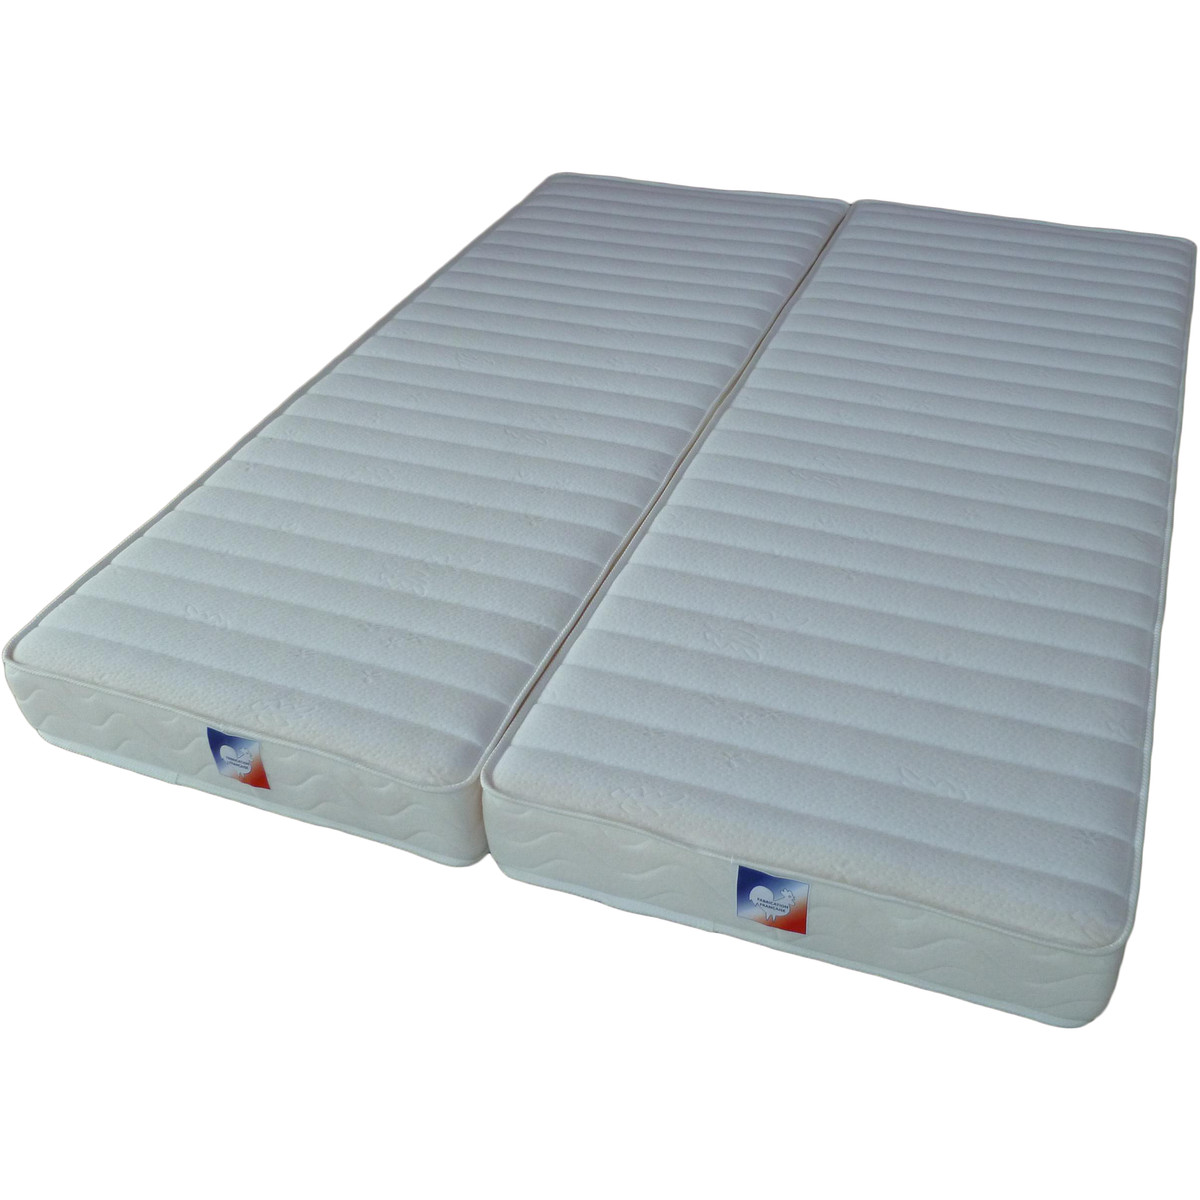 Sommier 2 Places Pliable Matelas En Latex Topiwall